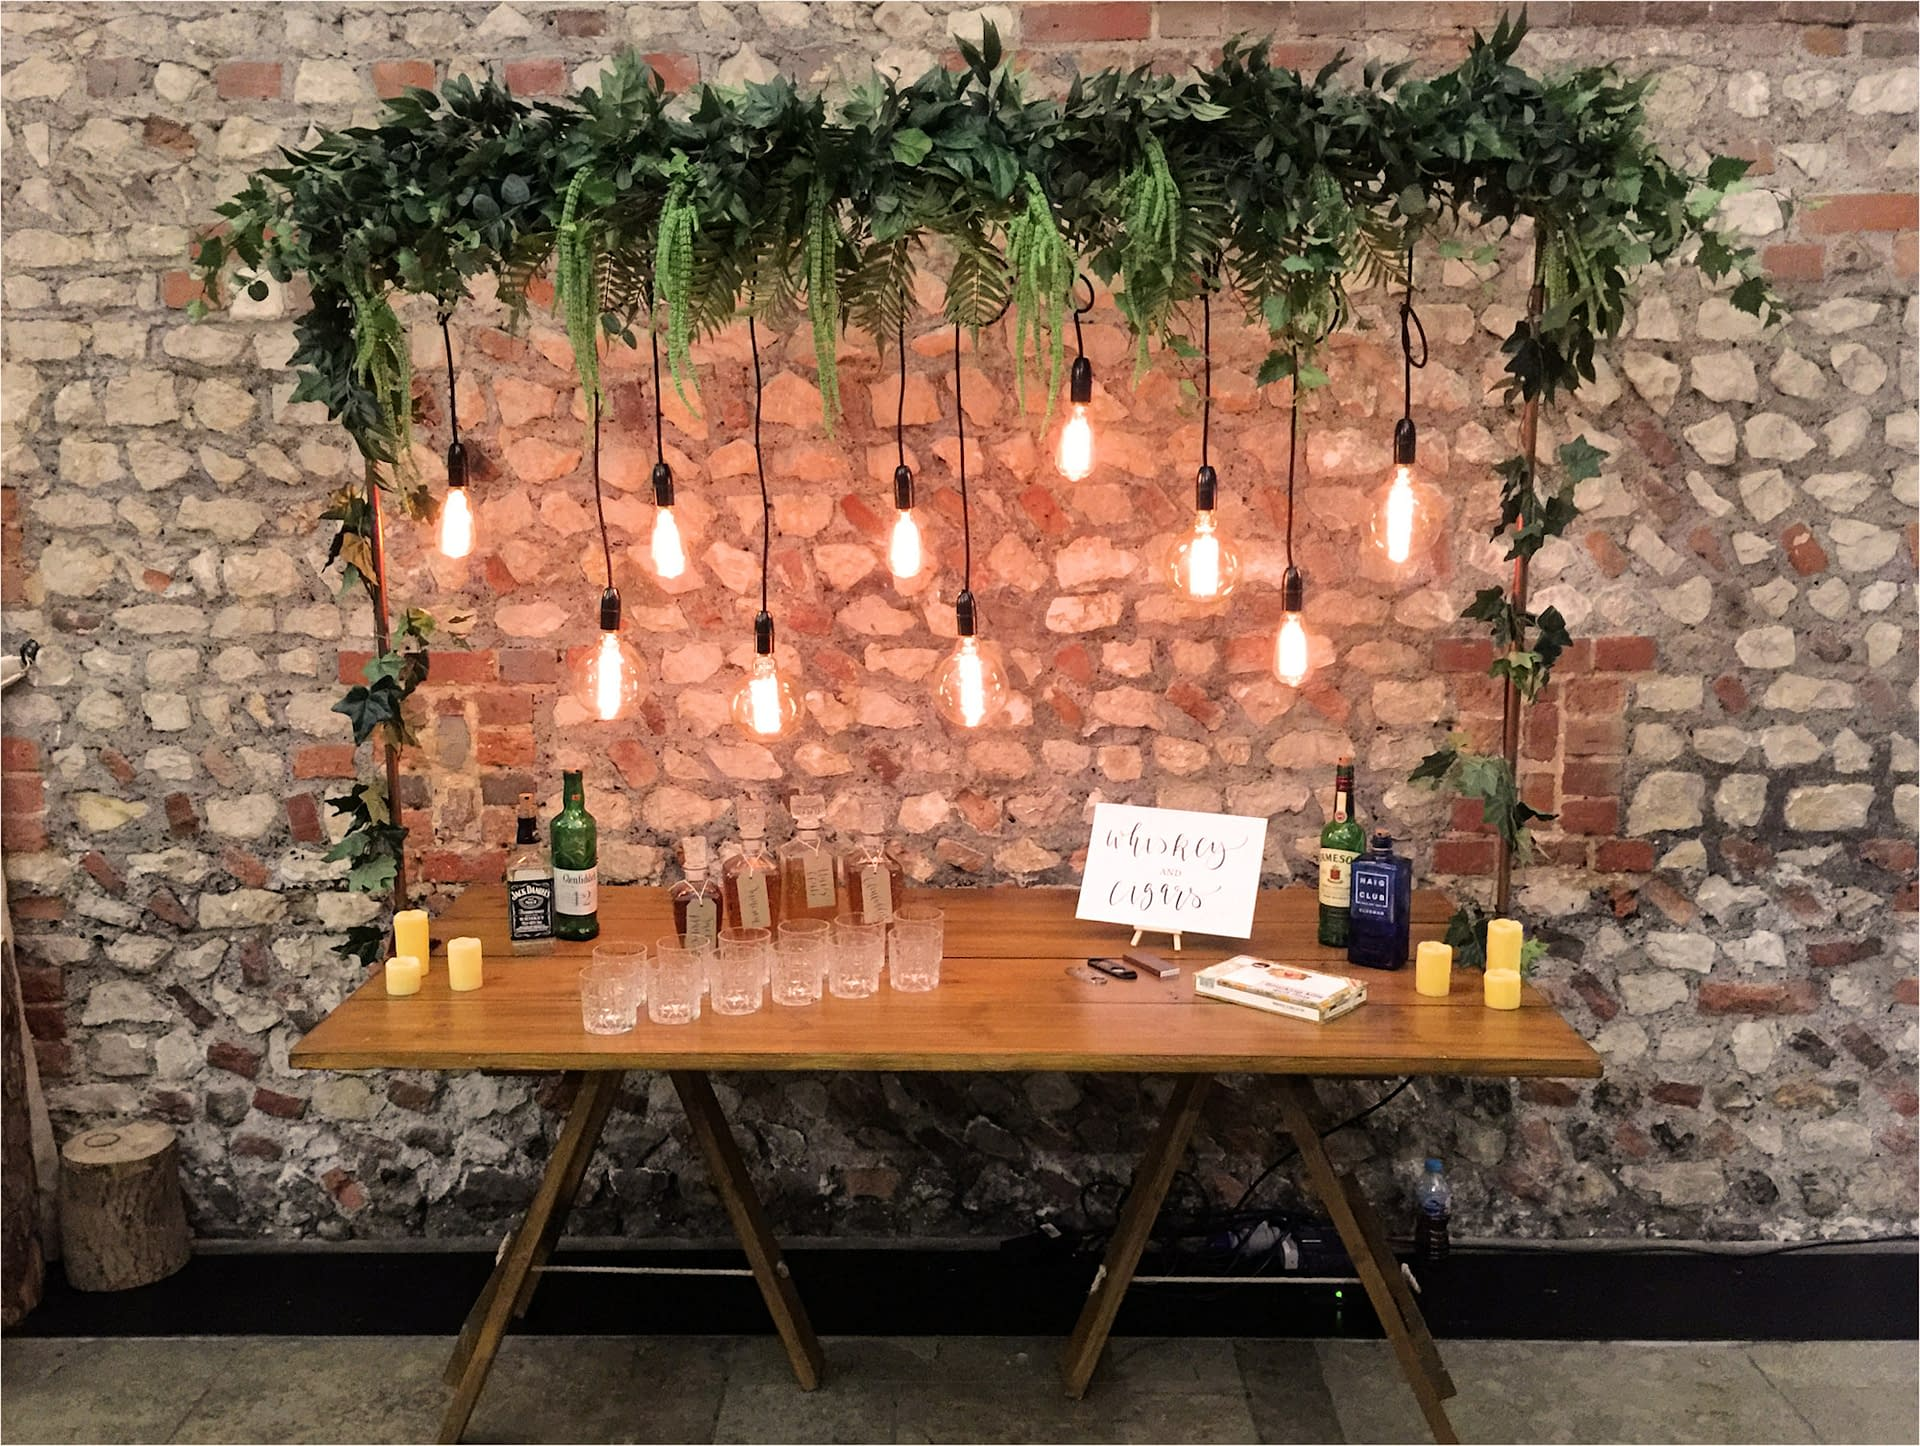 Fun rustic whisky bar styled using filament drops and foliage over a bare top table for a Sussex barn wedding at Farbridge